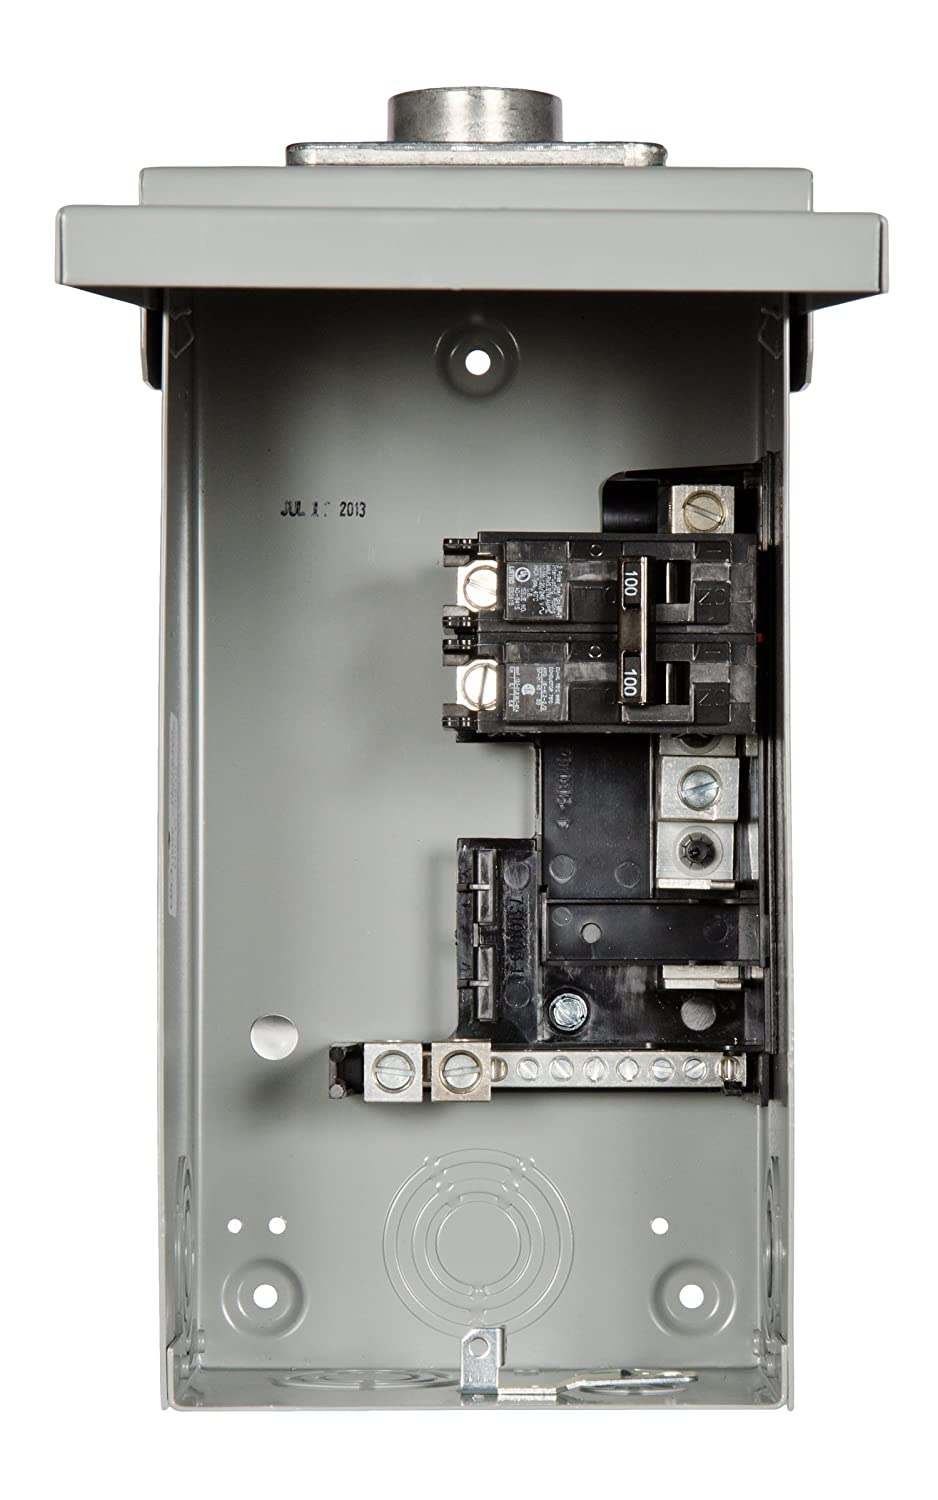 Murray LW102NLU 100-Amp Outdoor Rated Circuit Breaker Enclosure - -  Amazon.com